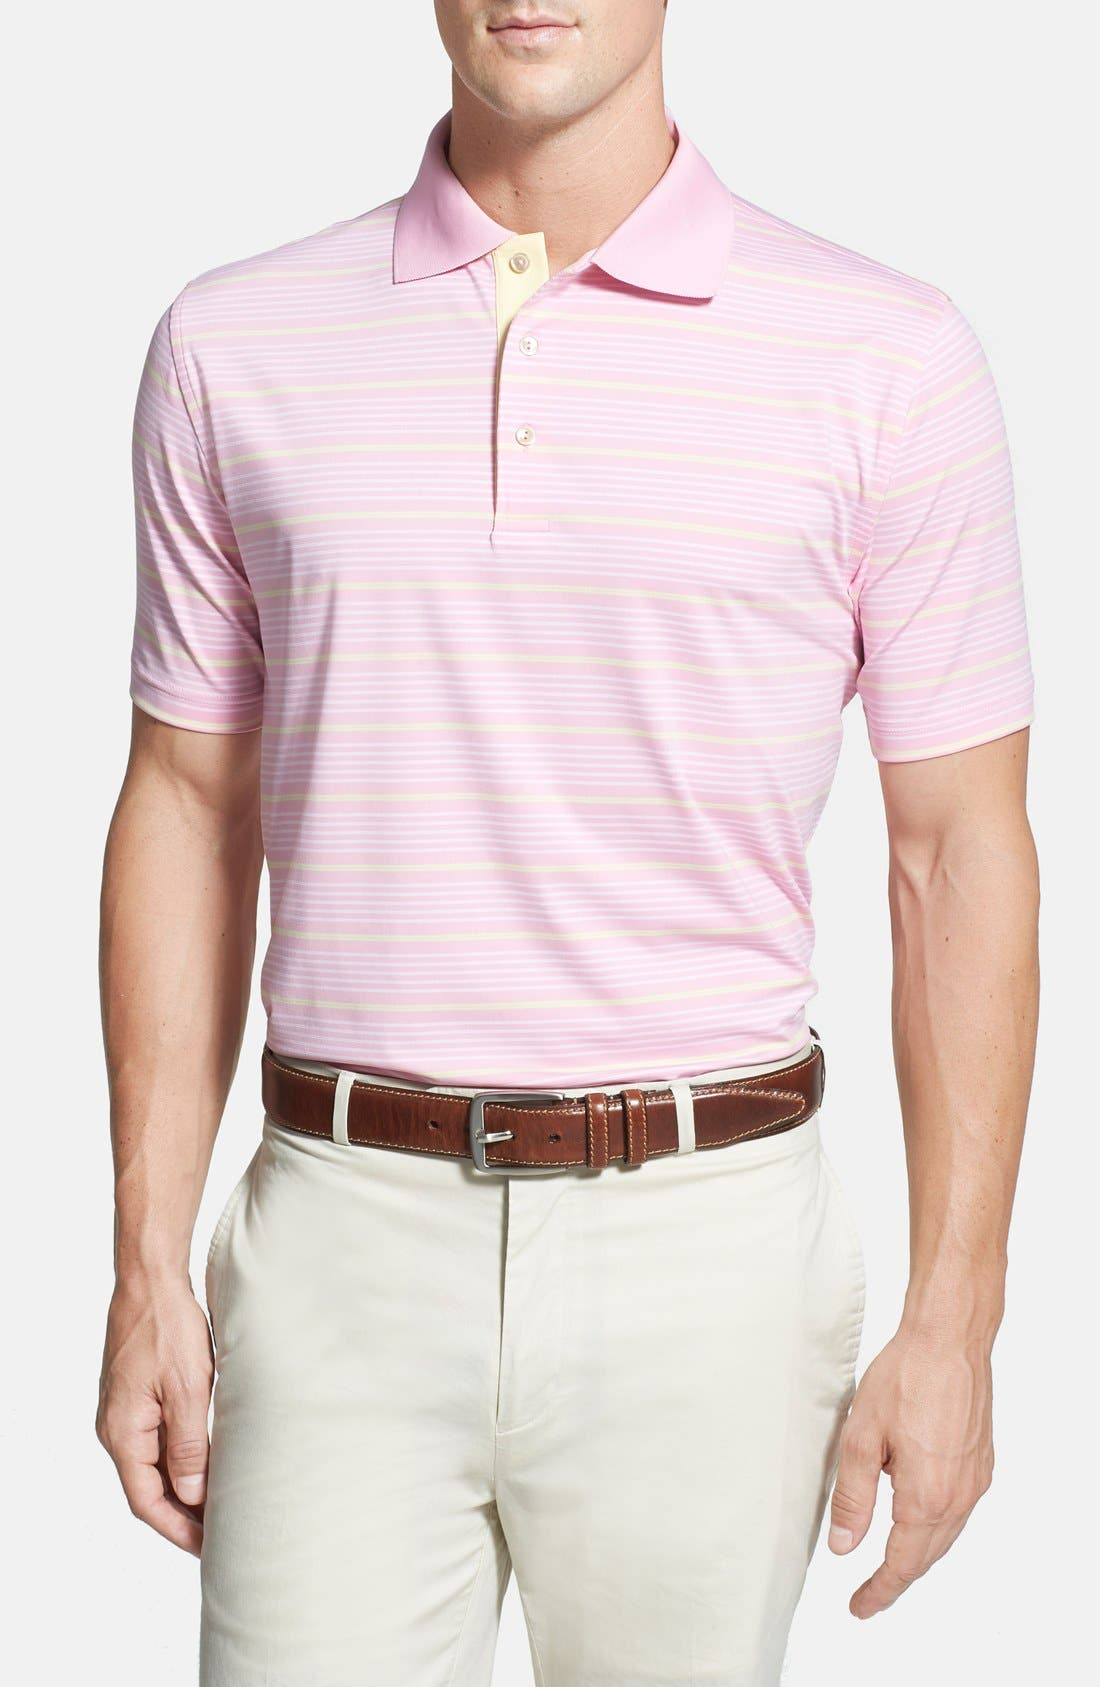 Main Image - Peter Millar 'Staley' Moisture Wicking Polo